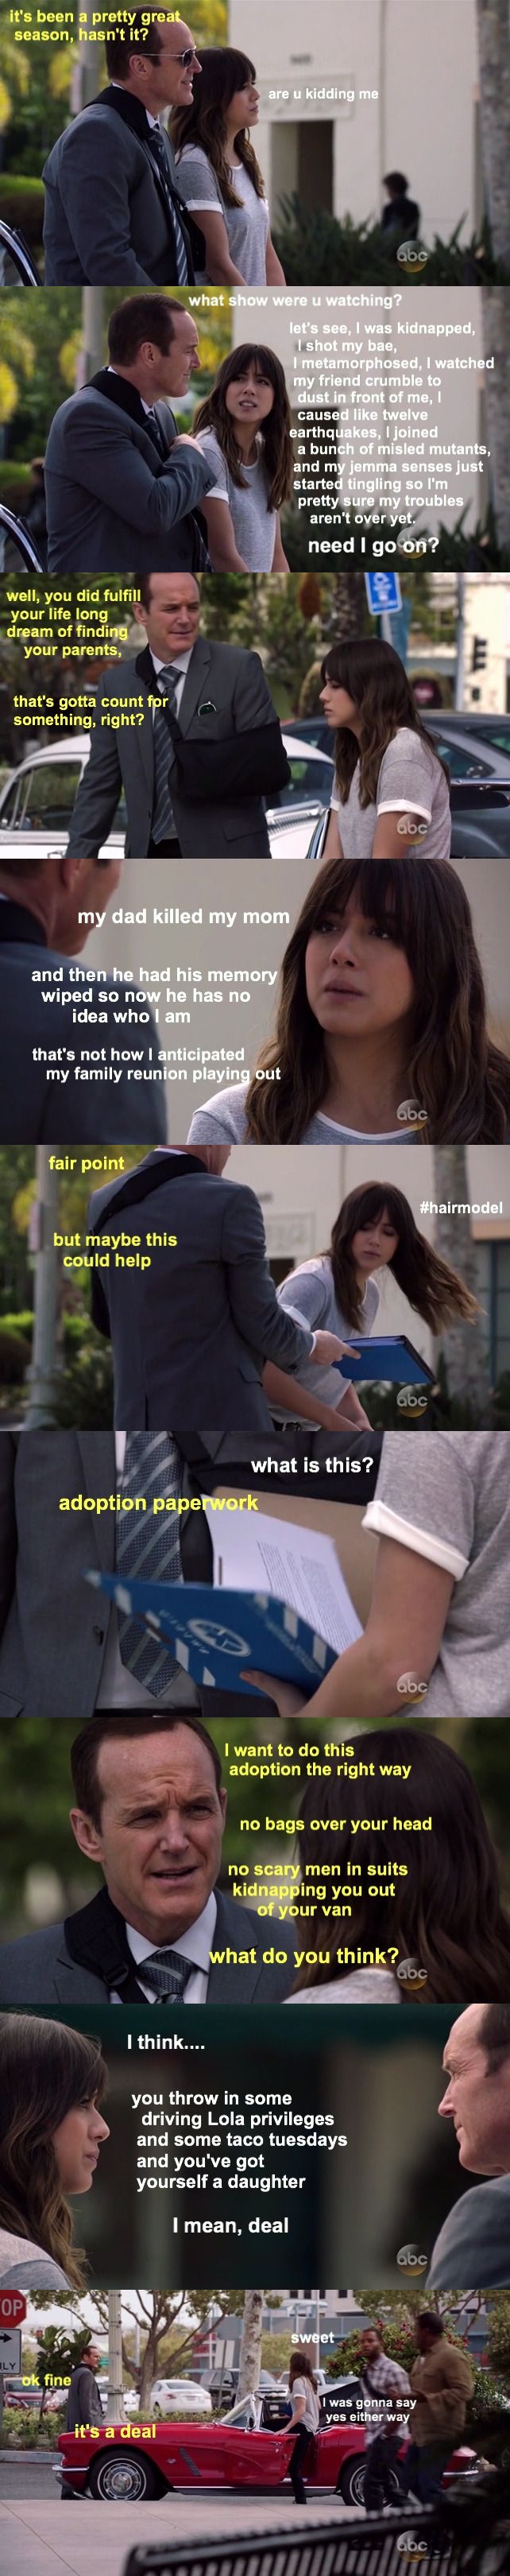 Coulson the dad. No, you don't understand, this is exactly what happened*-*